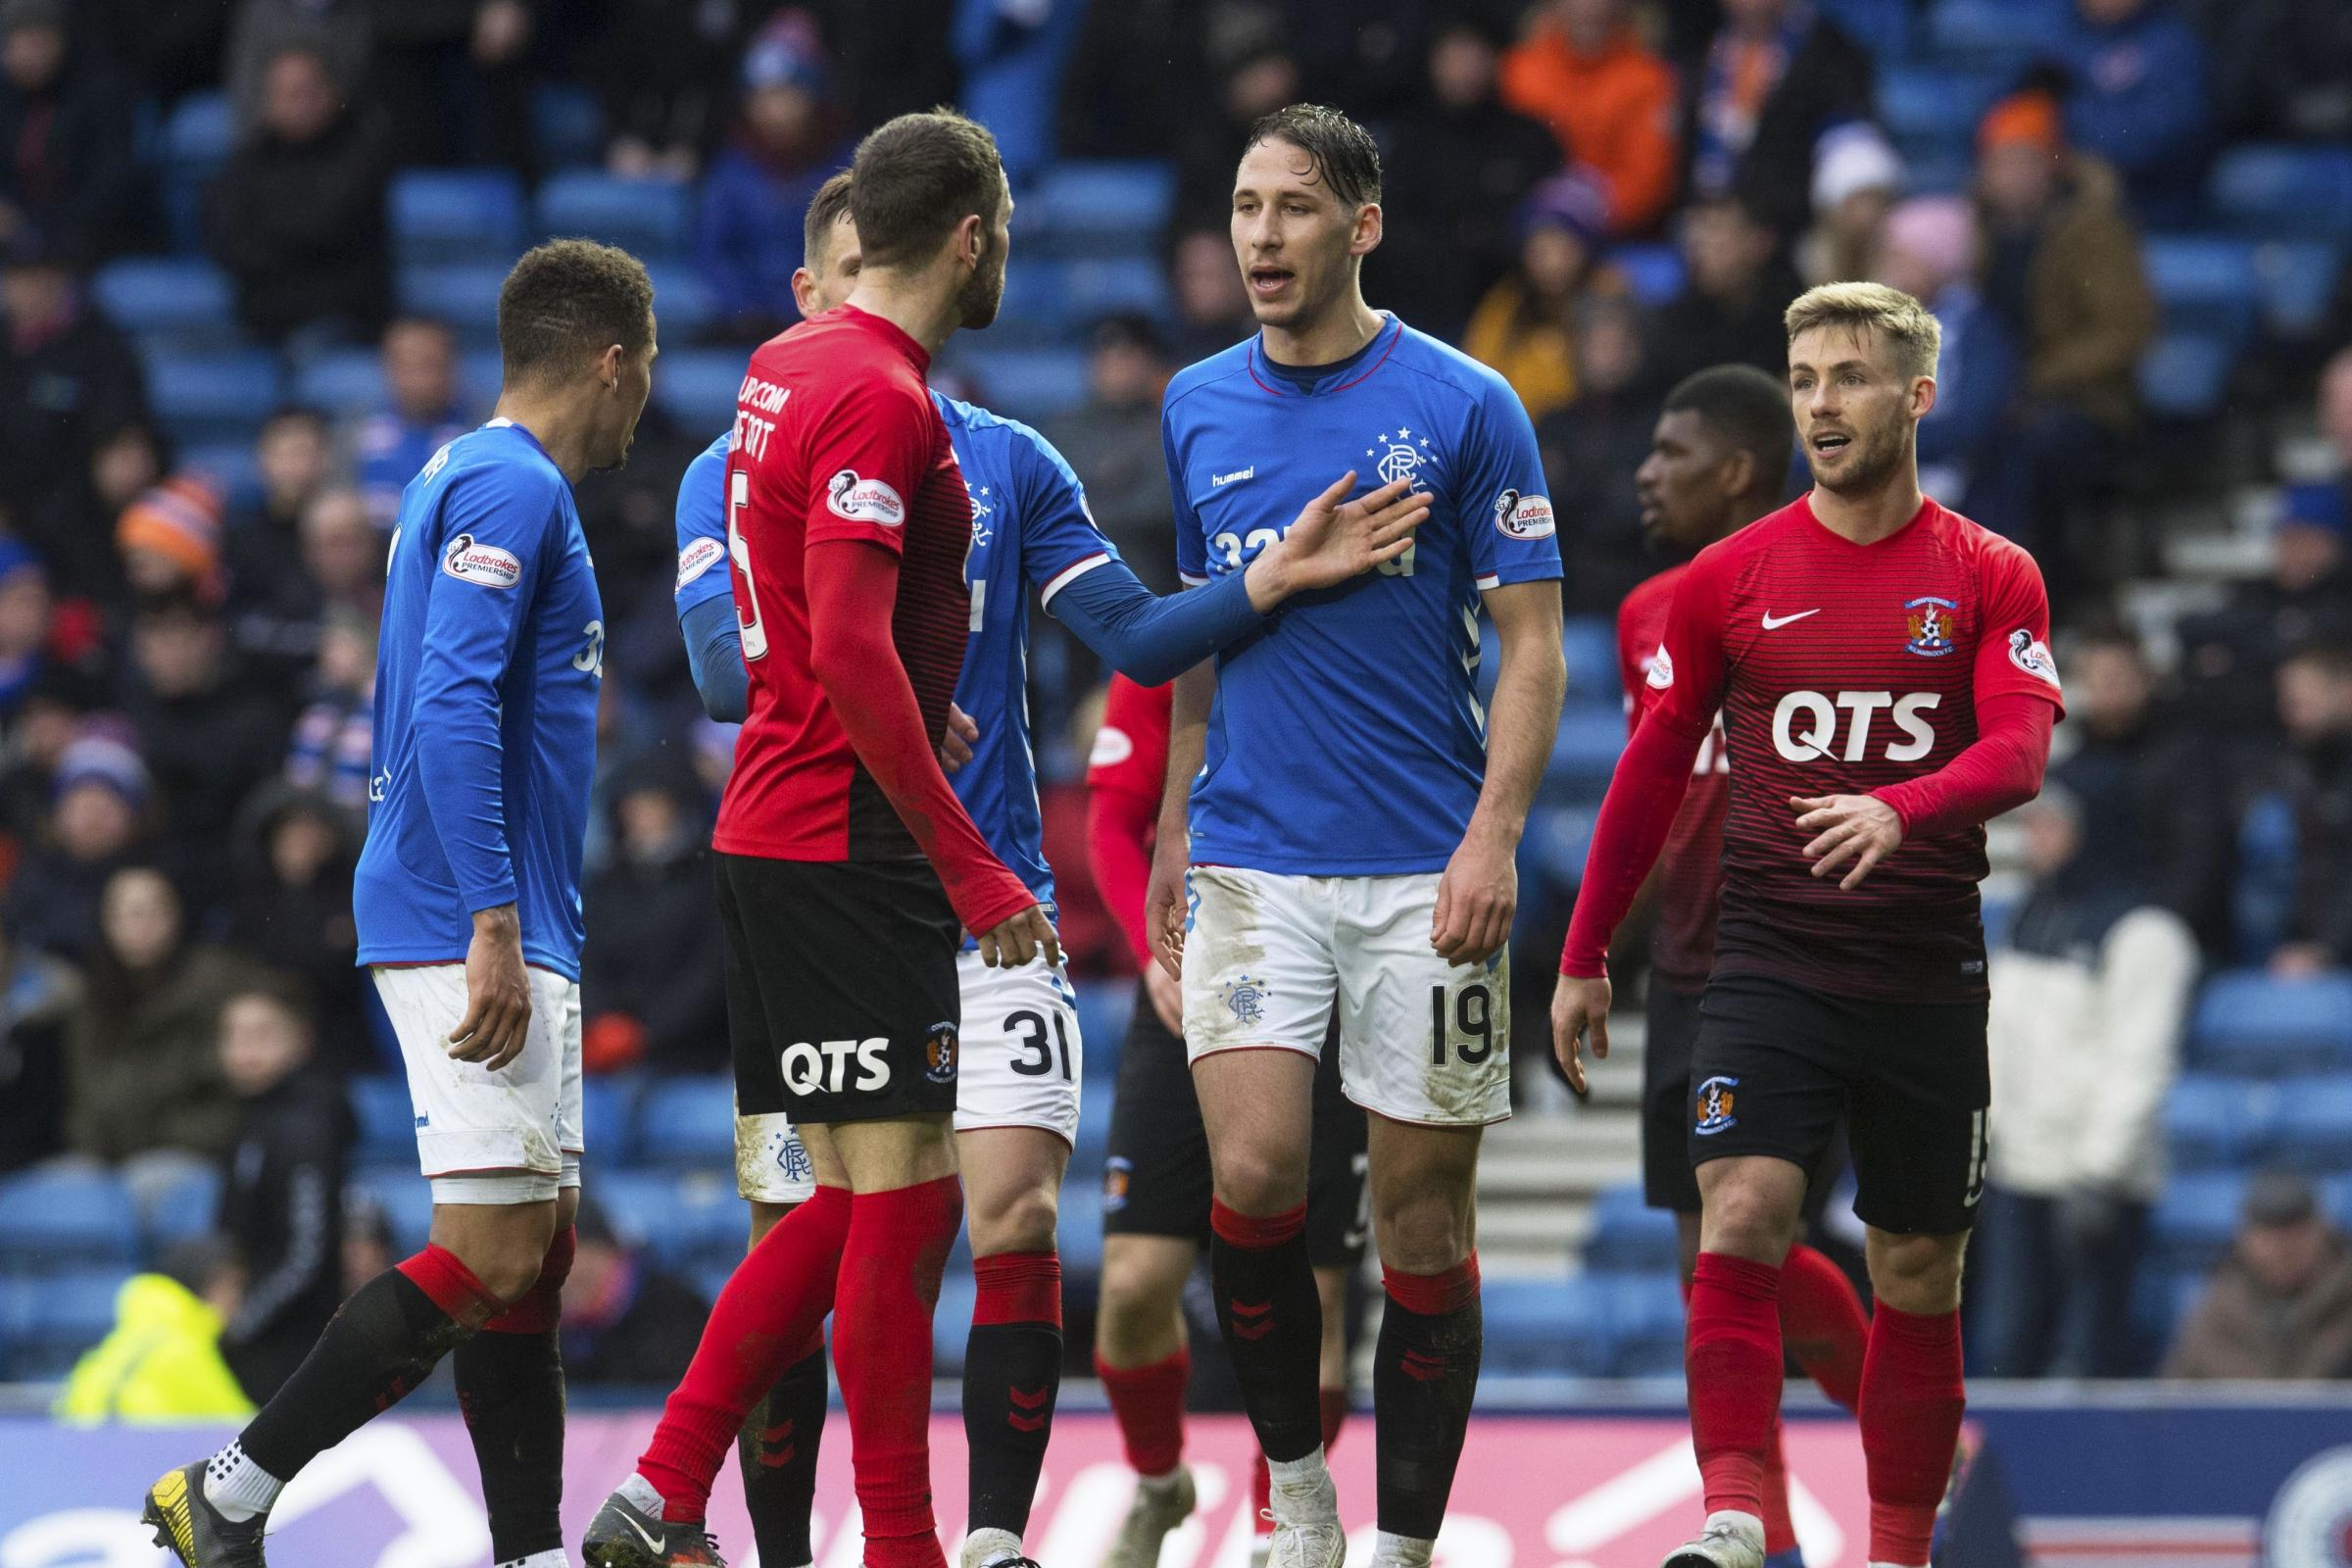 Rangers defender Nikola Katic surprised by style of Scottish football after Kilmarnock's 'rugby' approach at Ibrox